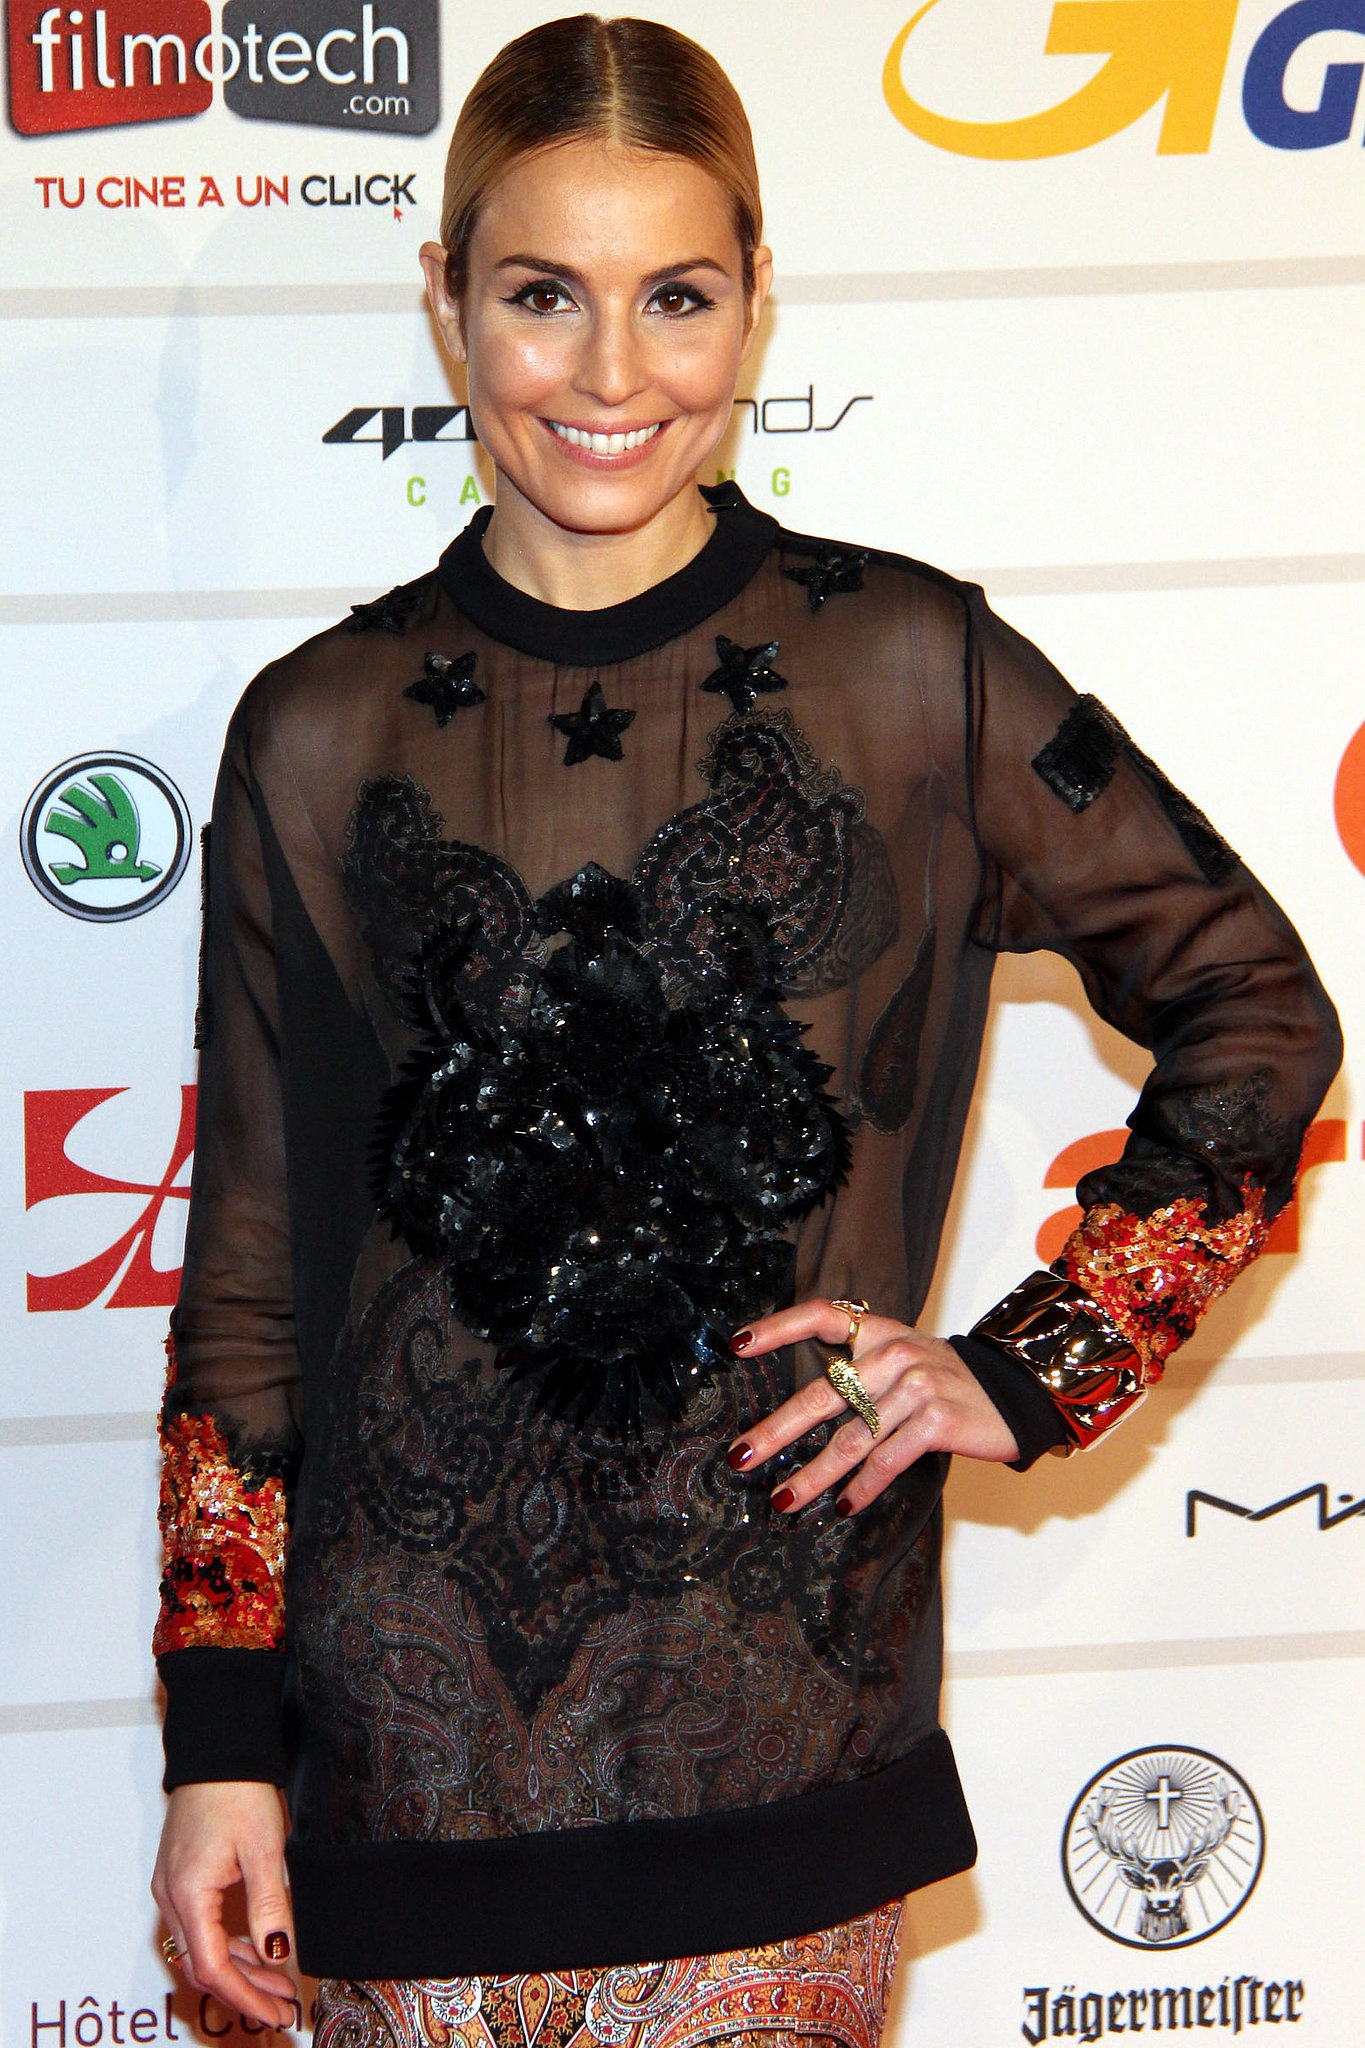 Noomi Rapace will star in Unlocked, a terrorism thriller in which she'll play a CIA agent.